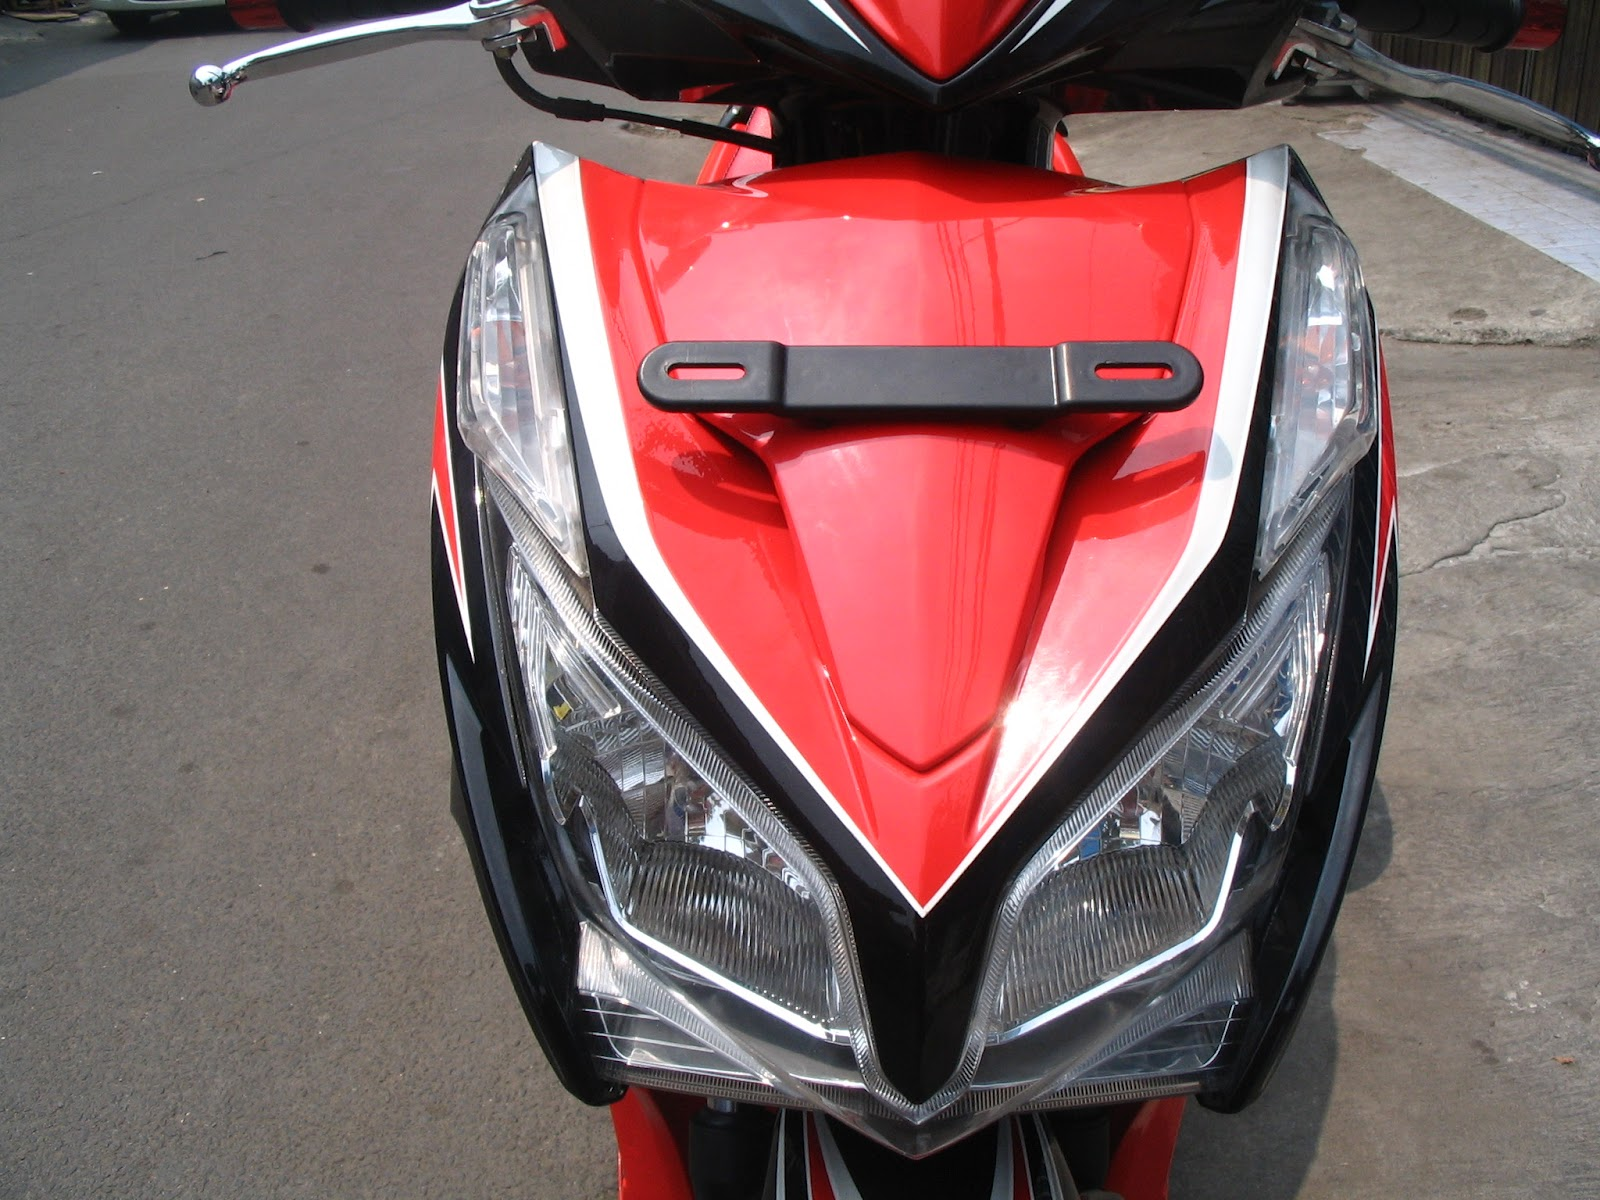 Download Modifikasi Motor Vario 125 Orange Terbaru Velgy Motor